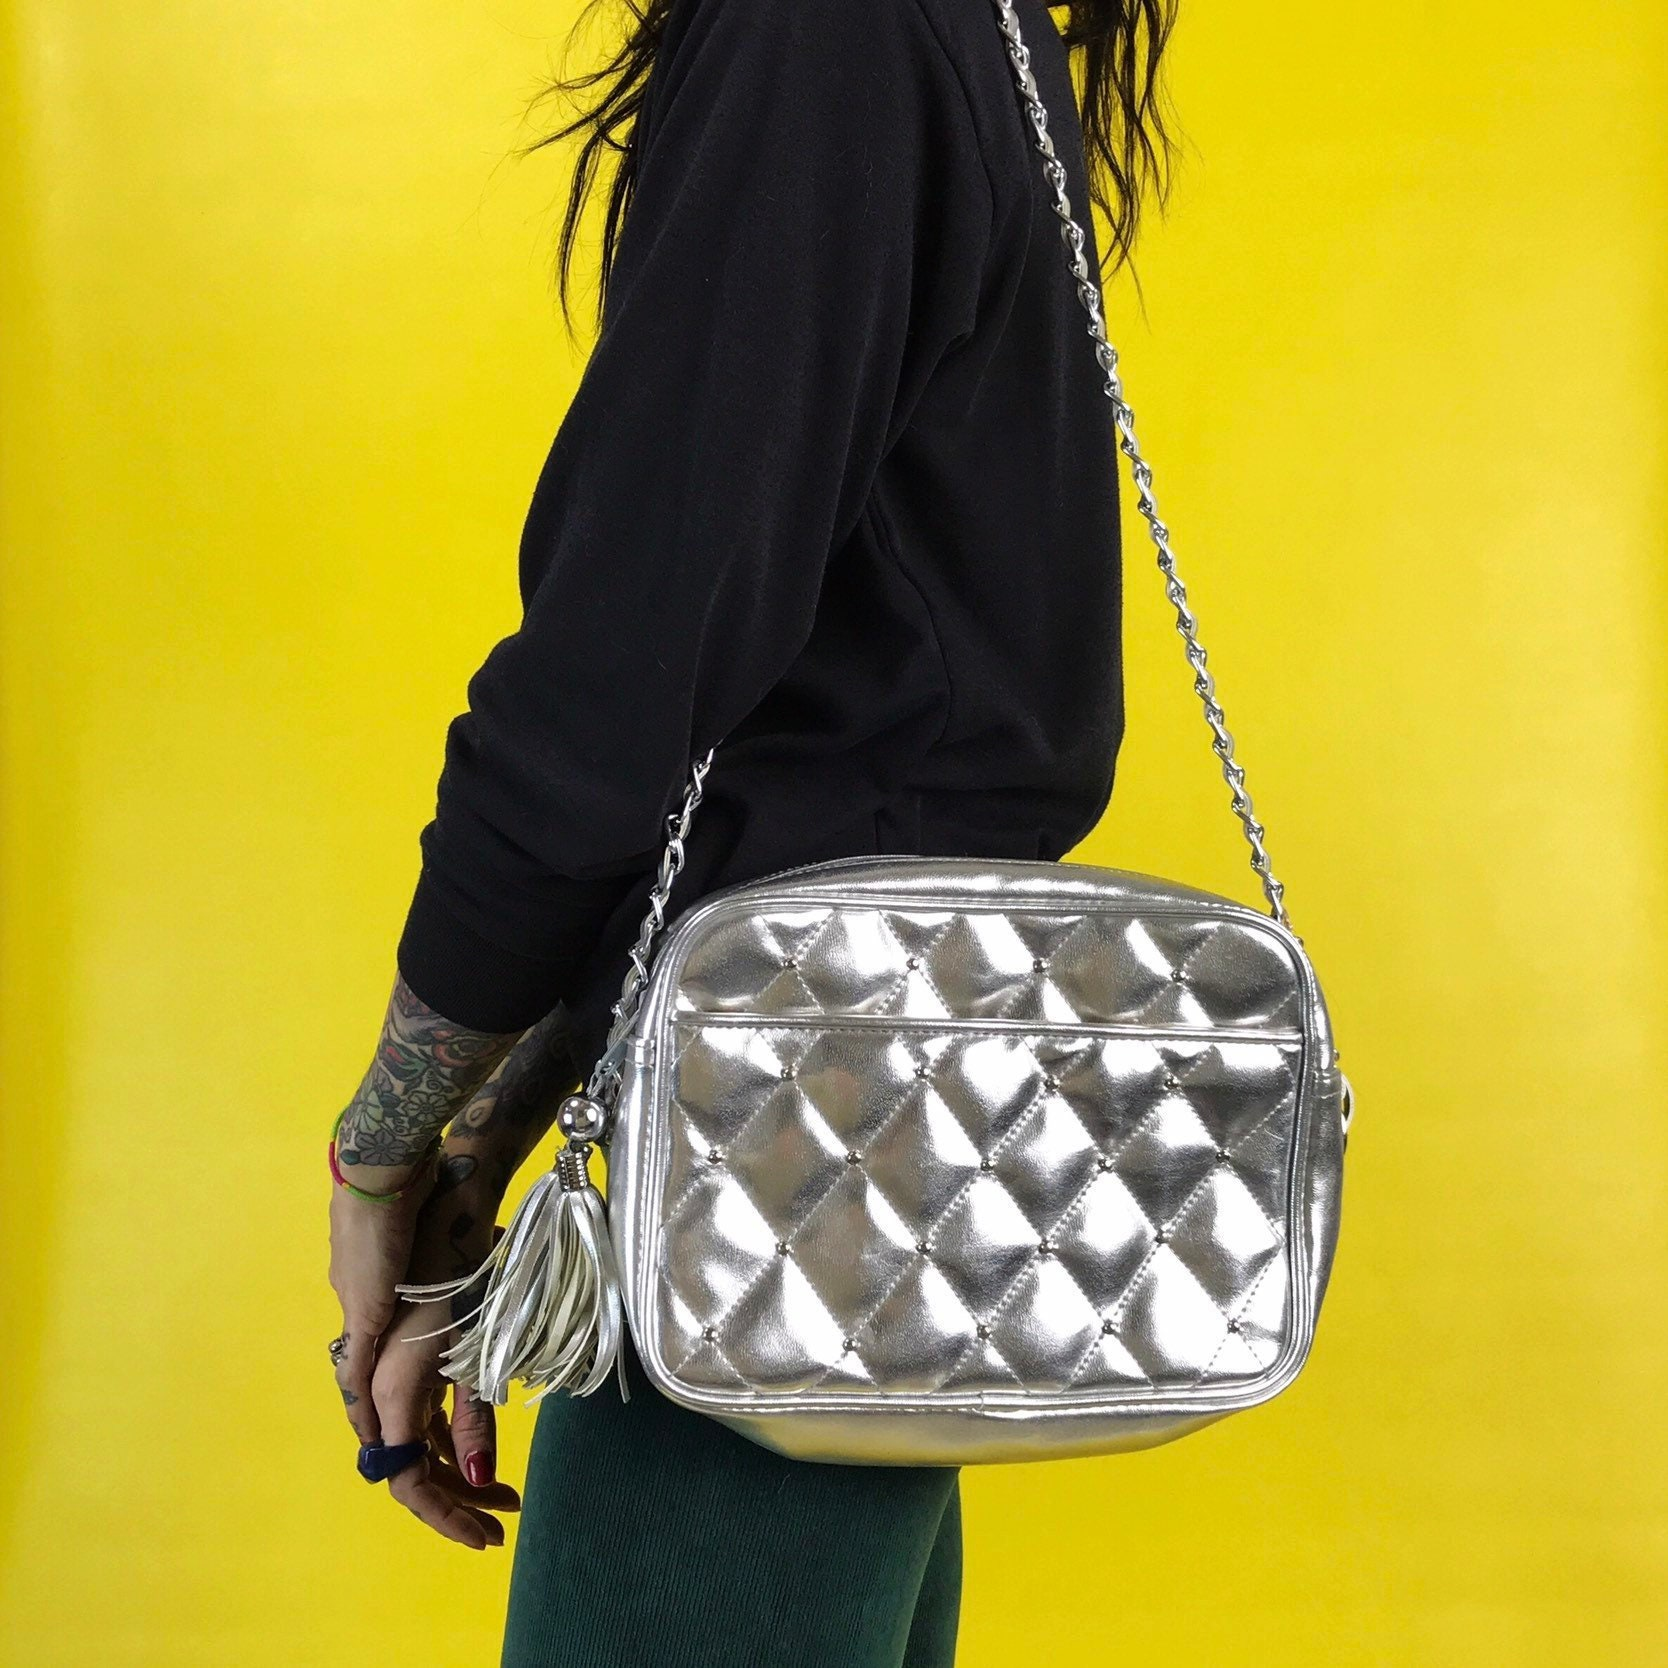 7a05d0464ad 80 s Silver Chain Strap Purse - Vintage Vinyl Purse Shoulder Bag Long Chain  Strap Crossbody - Silver Metallic Shiny Multi Zipper Statement. gallery  photo ...